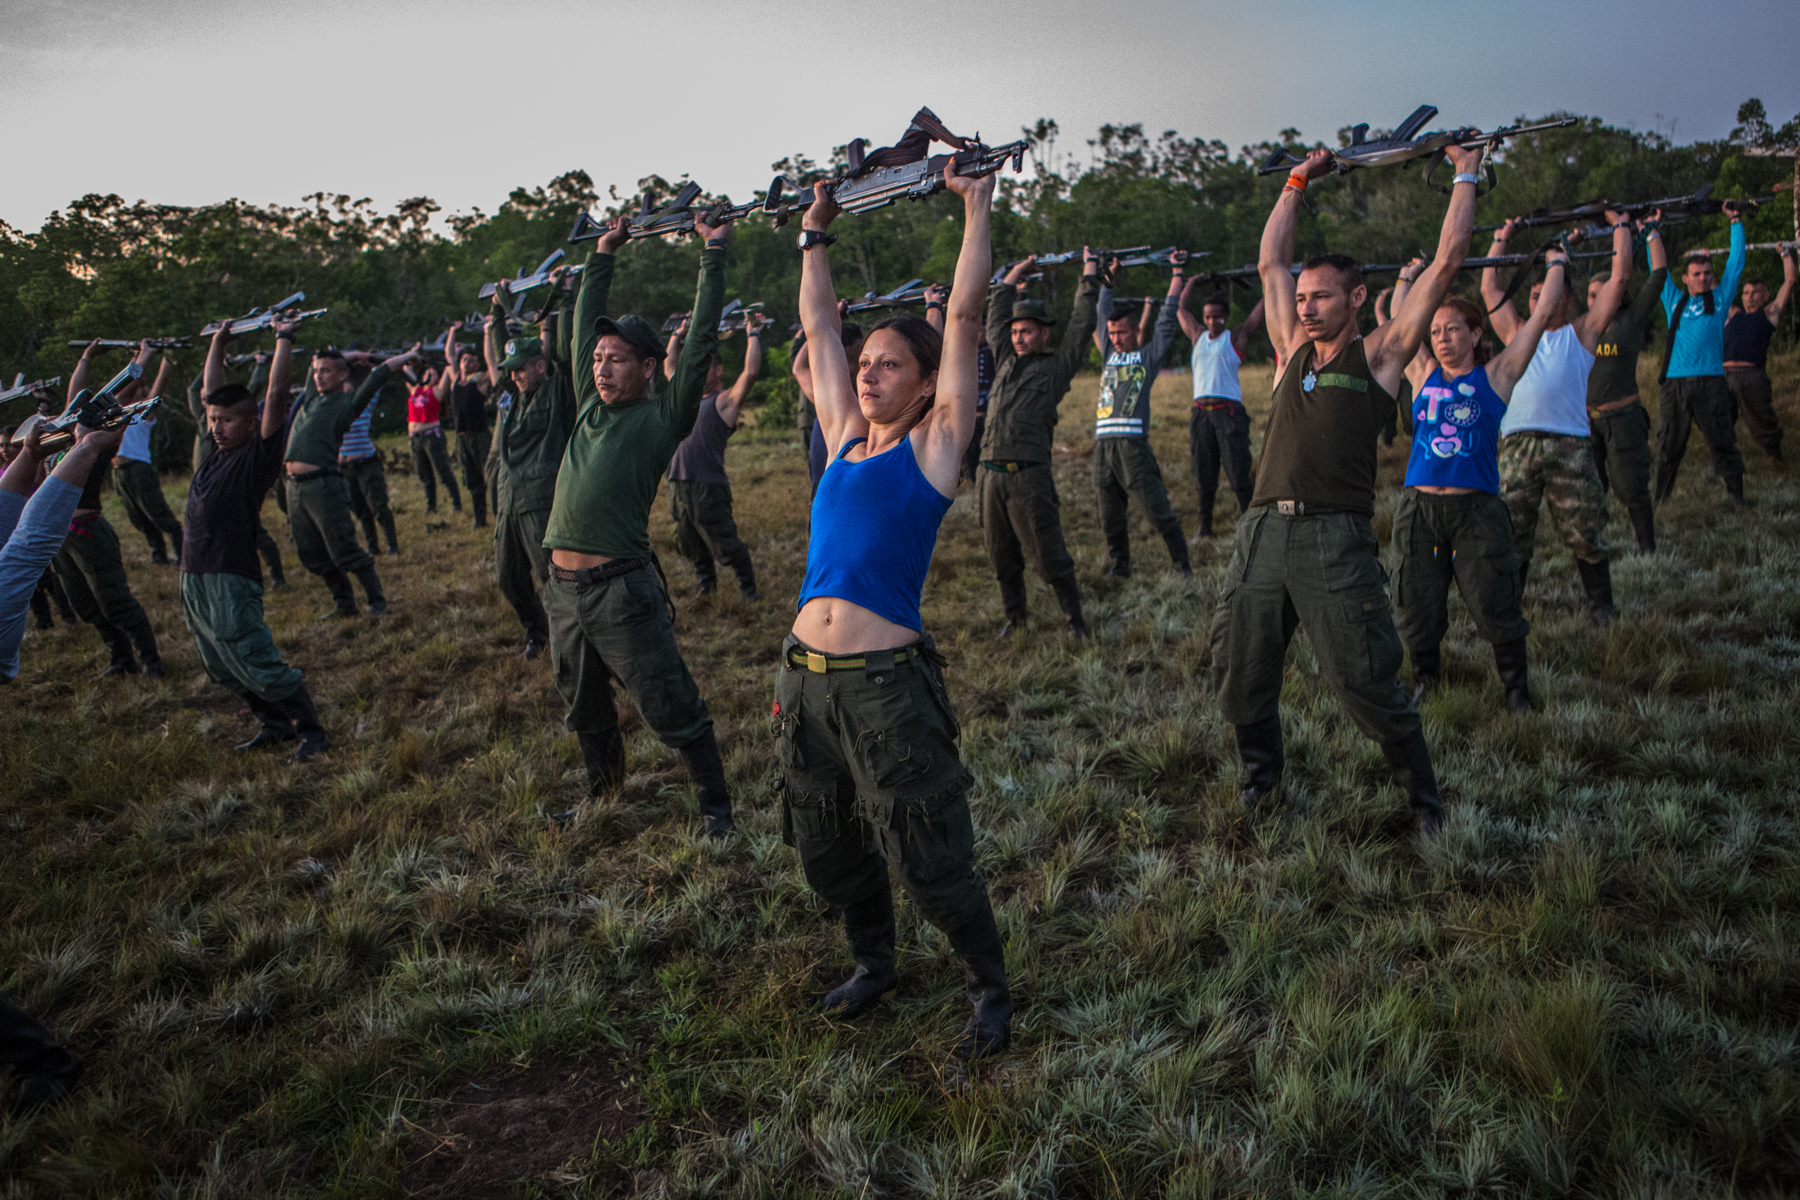 November 2, 2016. Members of the 17th and 51th fronts of FARC due military kynestethics every morning to main fitness.  After a referendum held on October 2 voted no against the peace accords, FARC troops have been held on standby waiting to reach a new peace agreement and proceed to concentration areas were they will demobilized in six months time. Caquetá. Colombia.